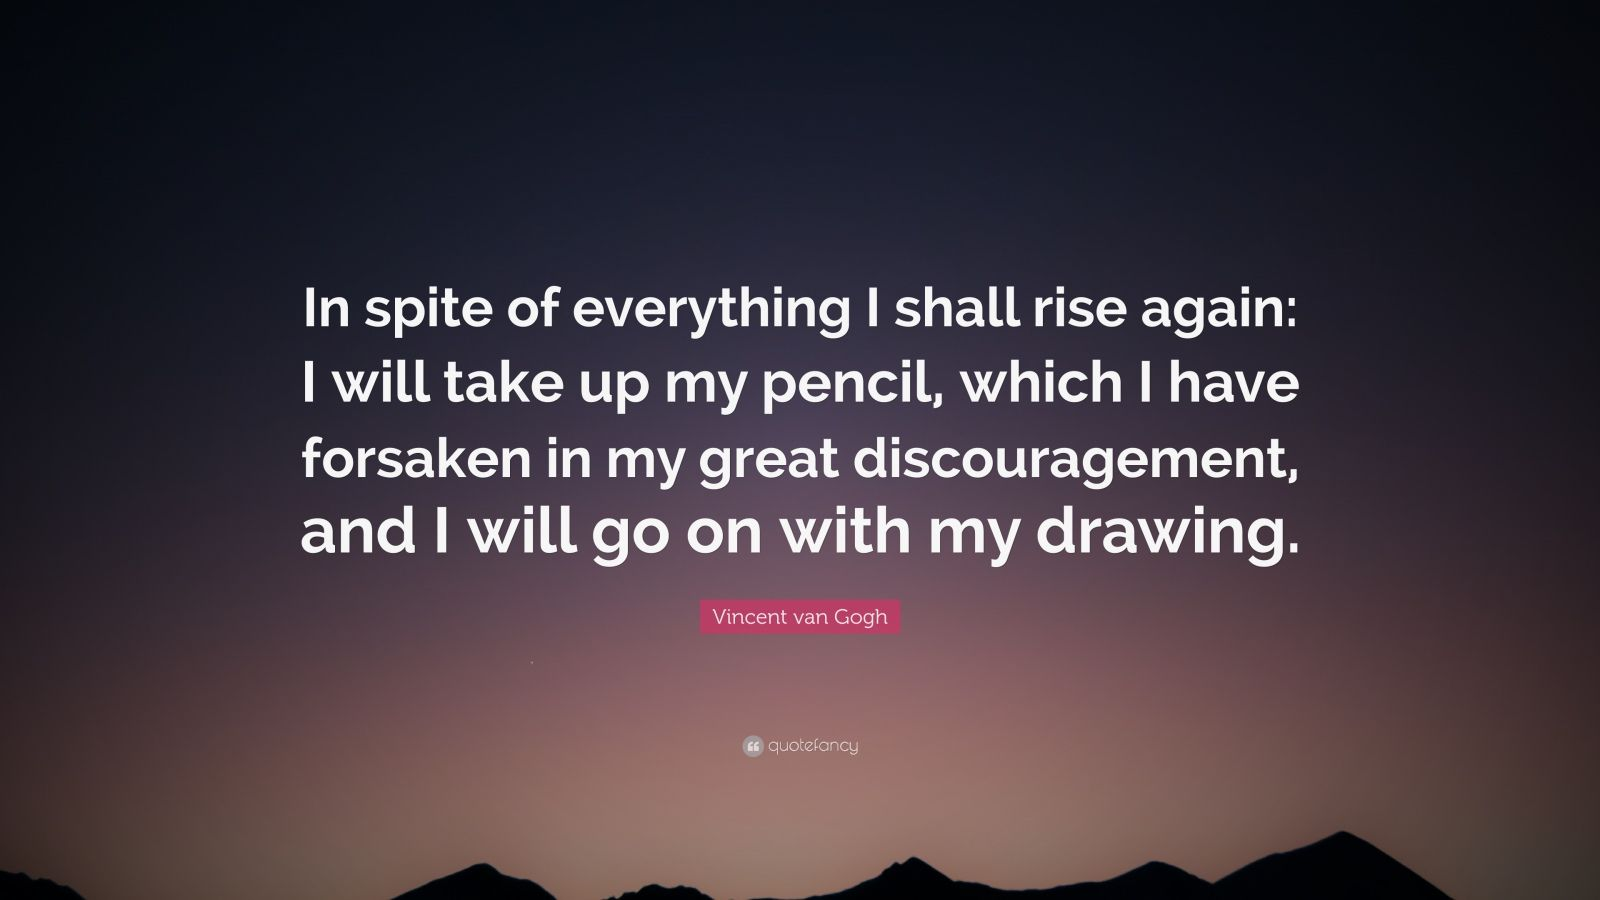 "Vincent van Gogh Quote: ""In spite of everything I shall rise again: I will take up my pencil, which I have forsaken in my great discouragement, and I will go on with my drawing."""